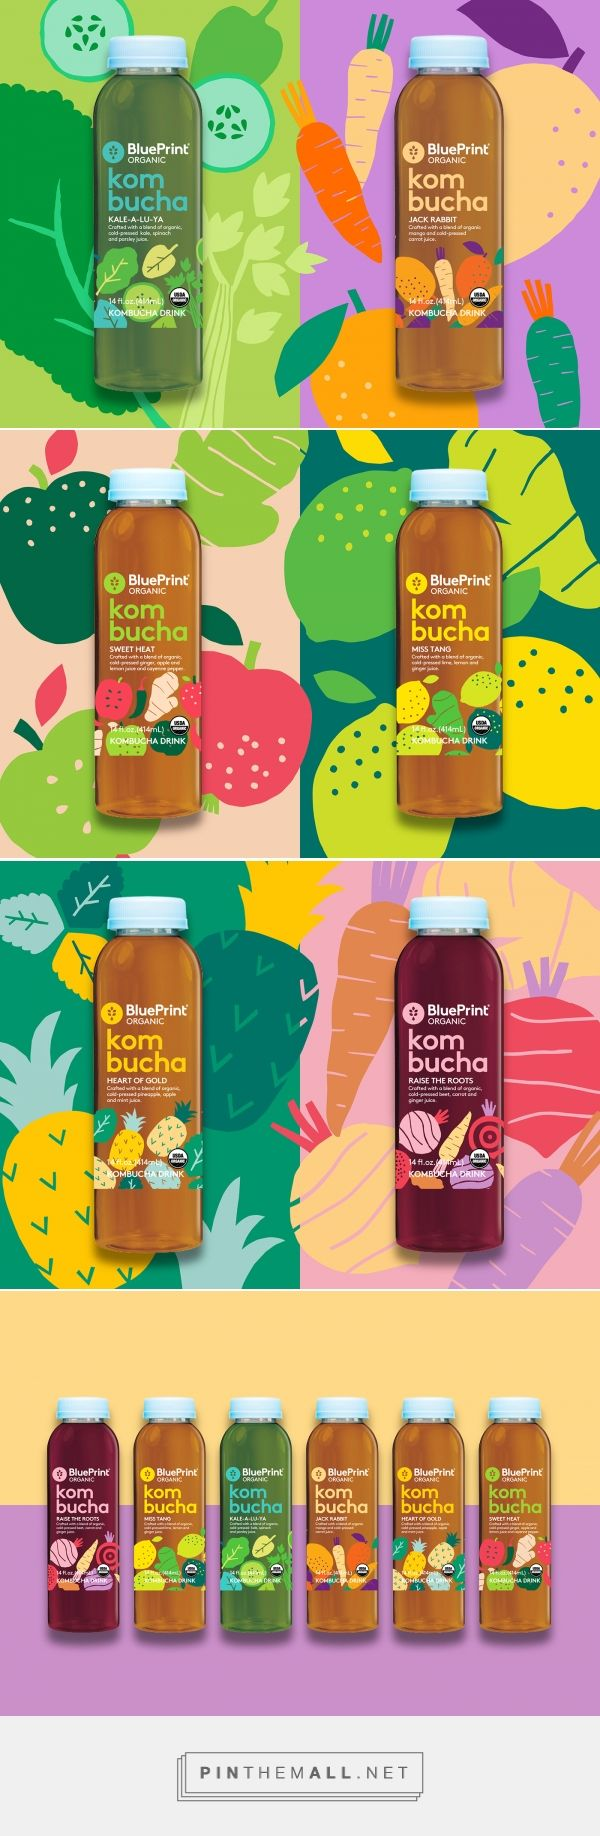 BluePrint Kombucha by Leena Kisonen